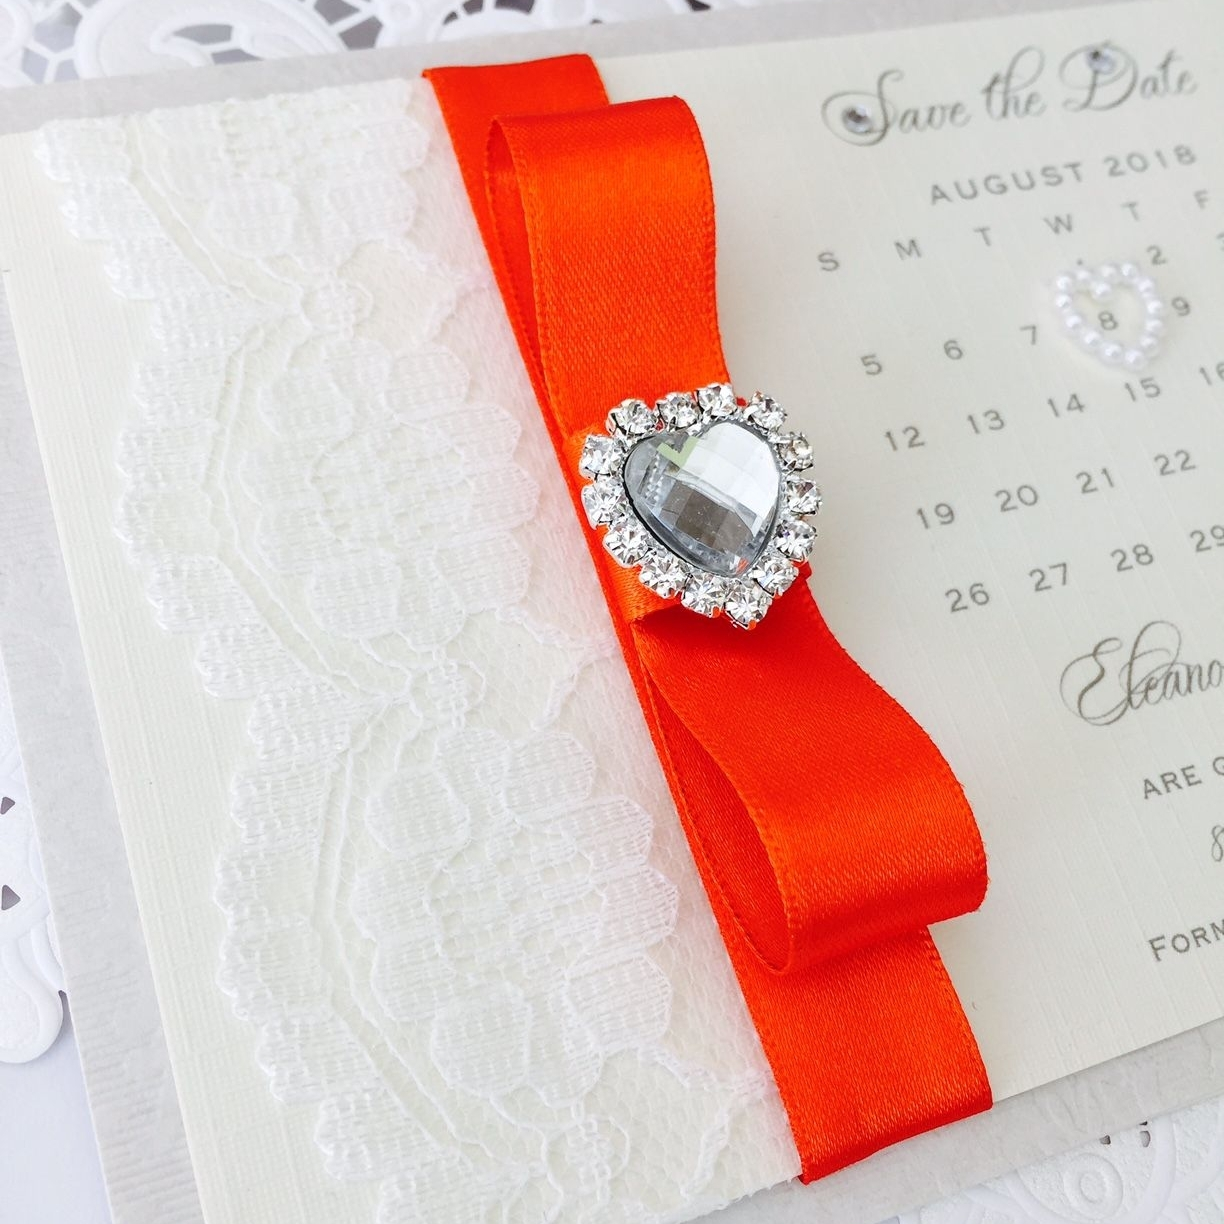 Save the date wedding calendar with orange ribbon and a crystal heart